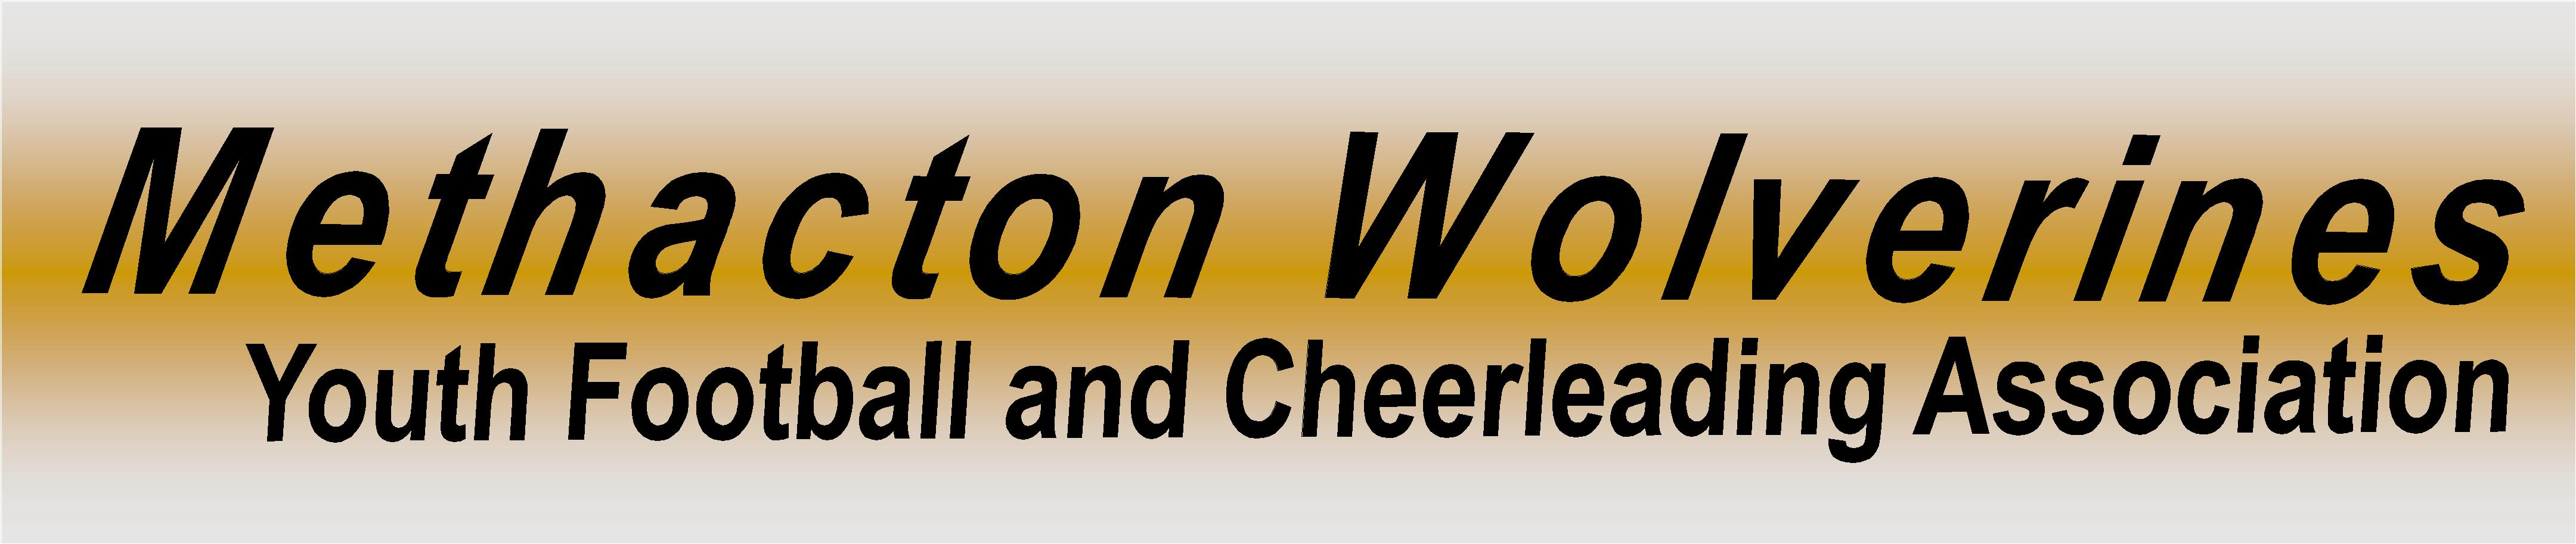 Methacton Wolverines logo